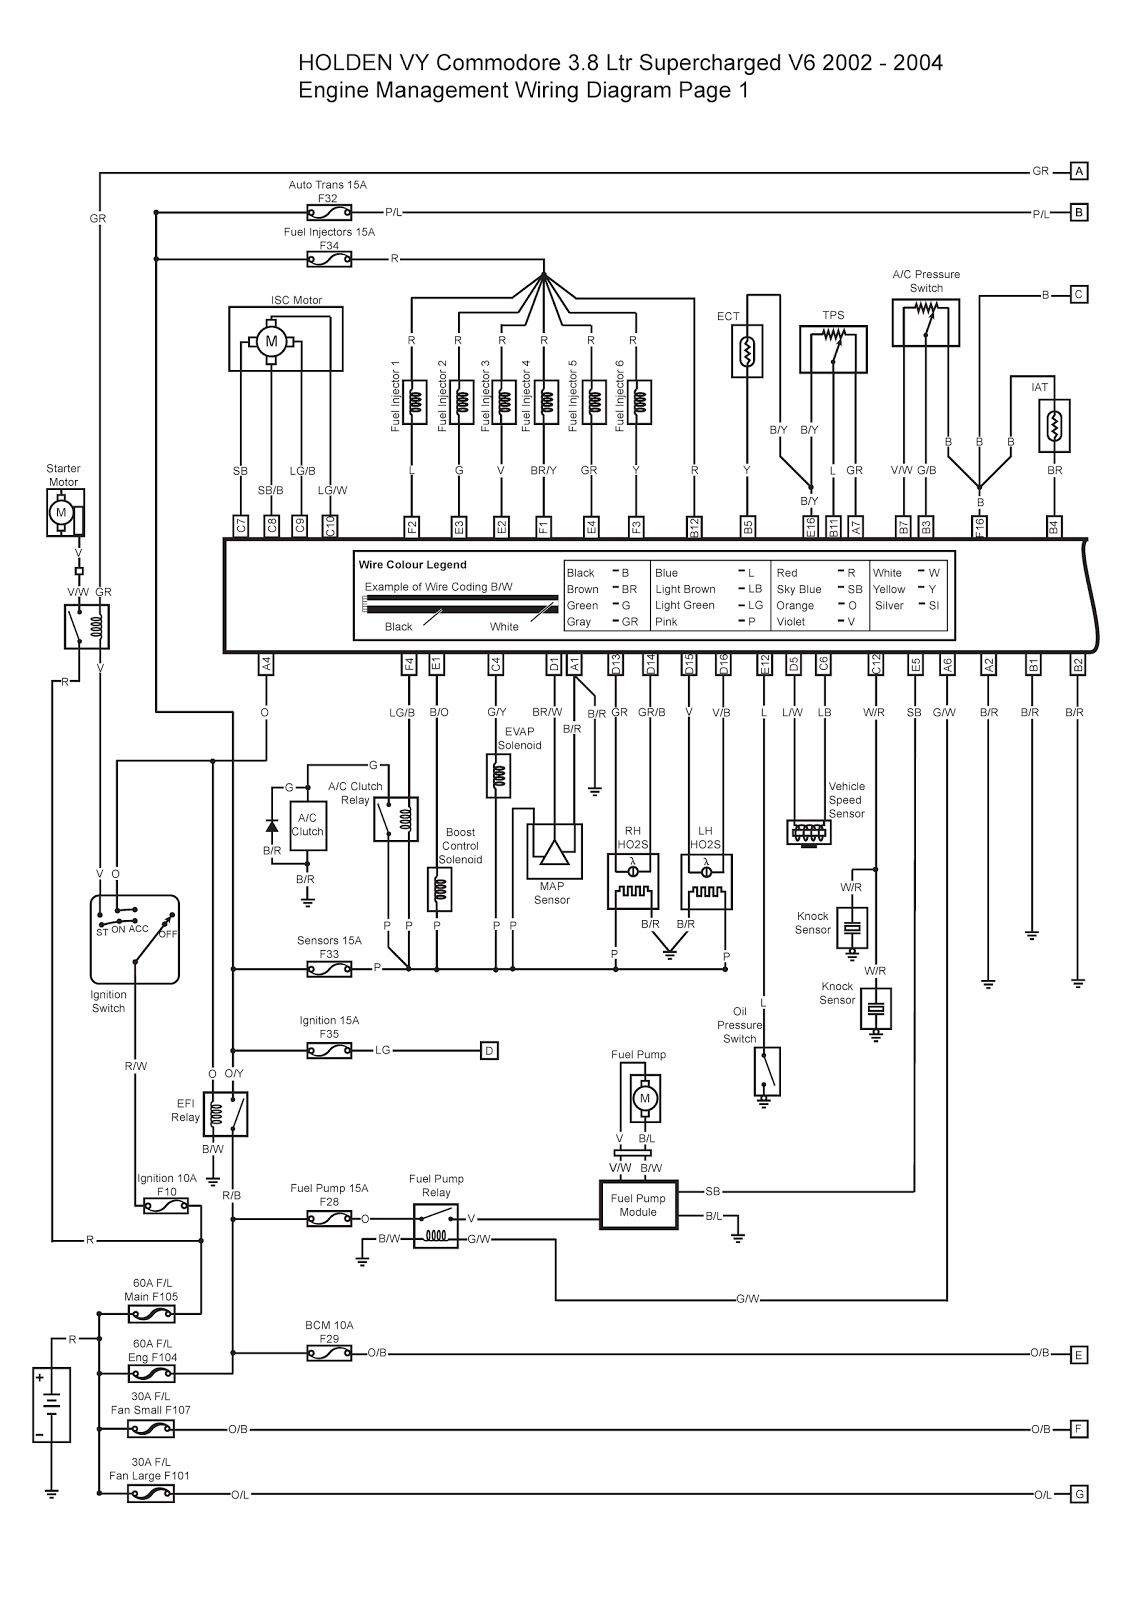 0001 vz wiring diagram efcaviation com vz bcm wiring diagram at readyjetset.co